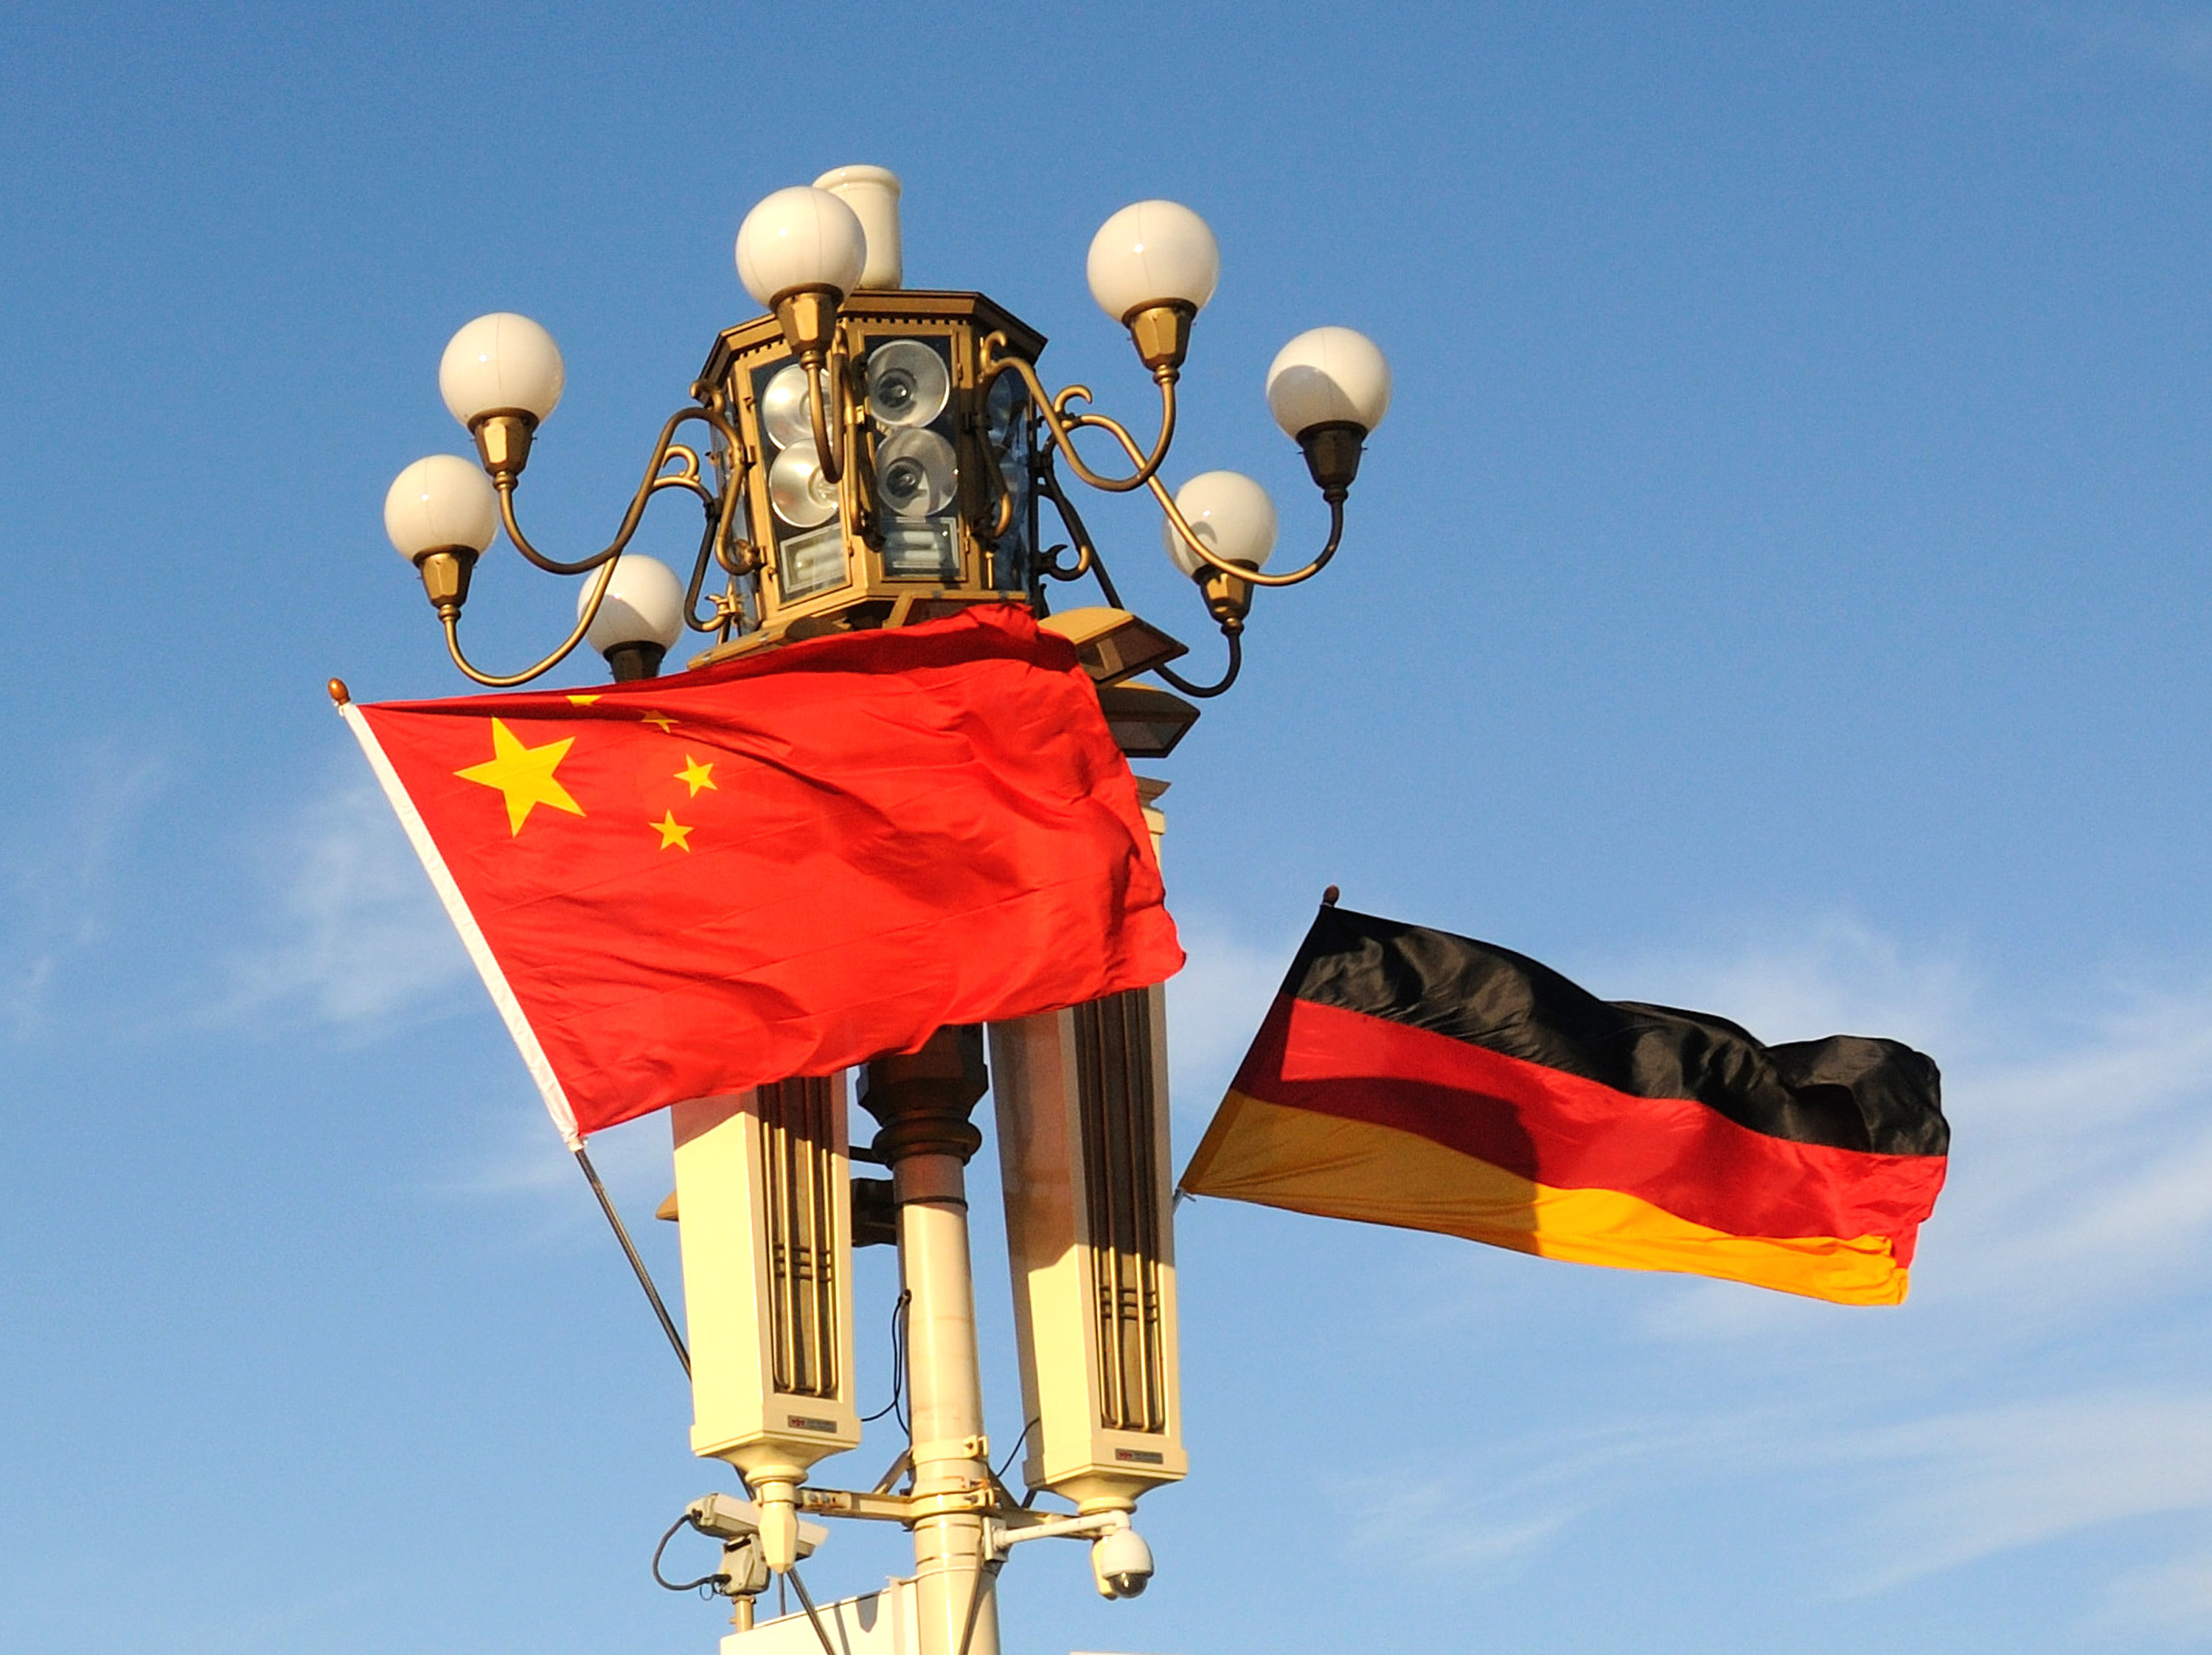 German Flags Decorate On Tian'anmen Square To Welcome Angela Merkel